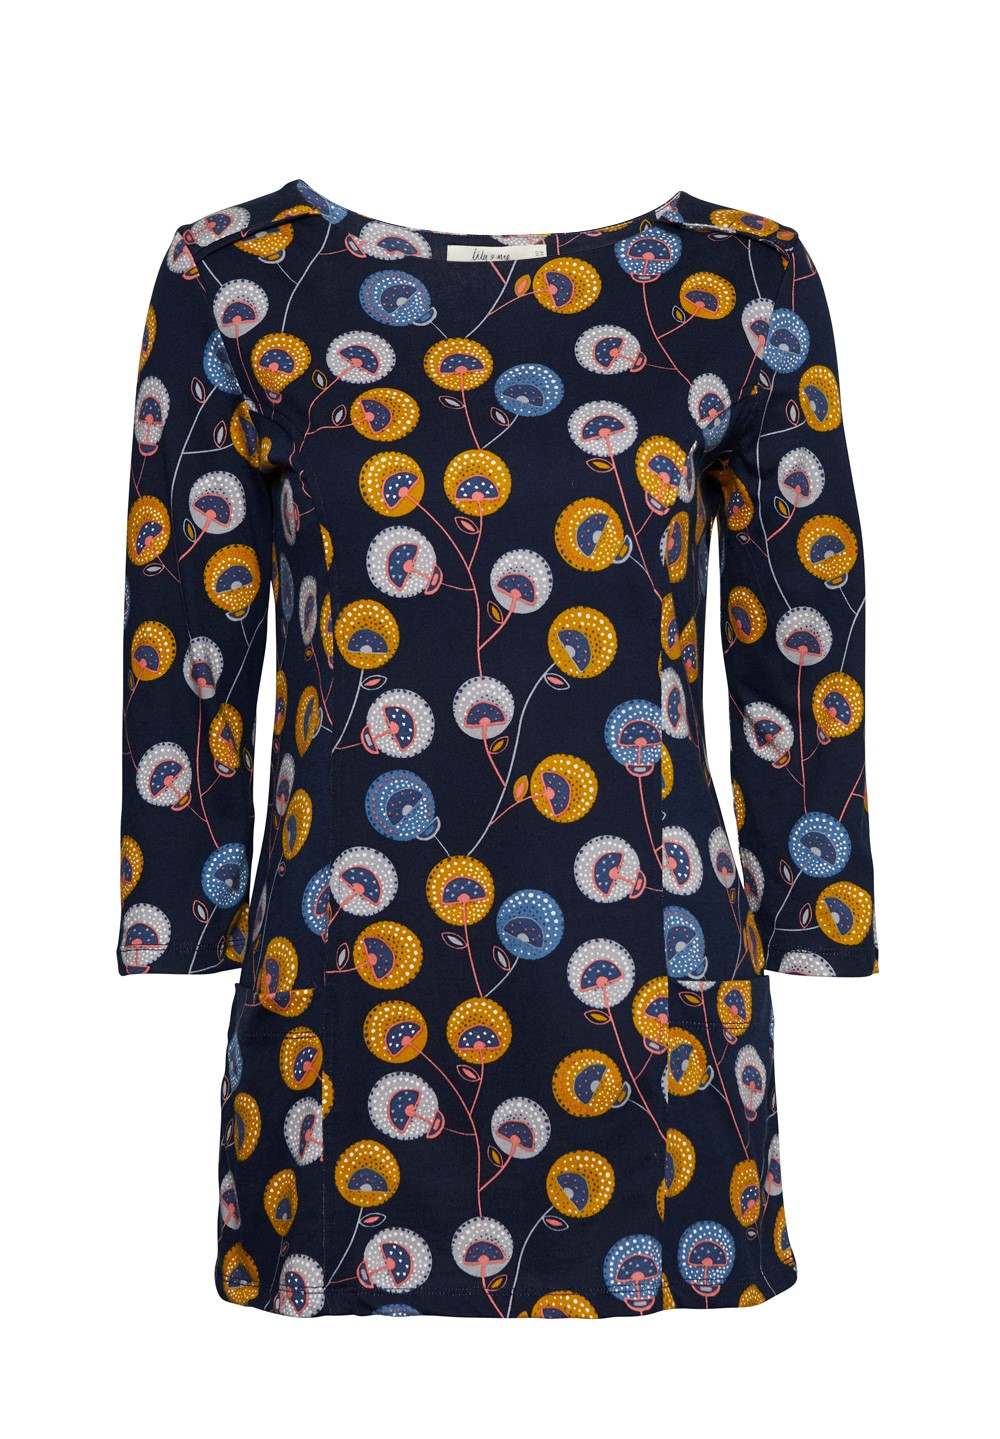 Lily & Me Albany Tunic £45